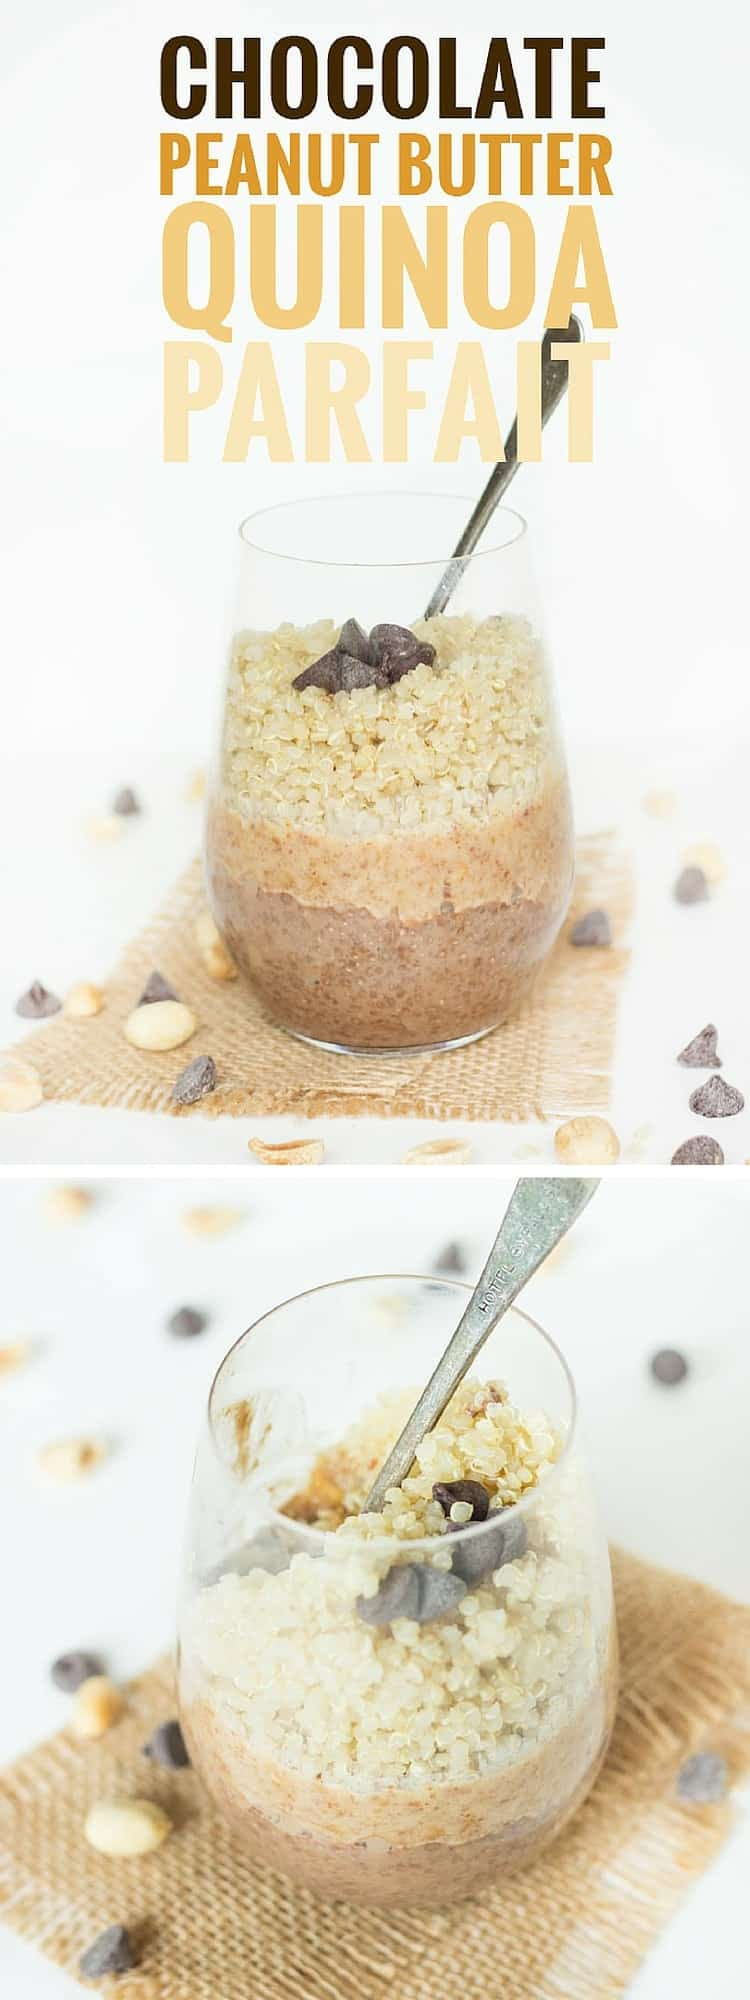 Breakfast that tastes like a Reese's Peanut Butter Cup! I can't wait to make this Chocolate + Peanut Butter Quinoa Parfait. The first layer is a simple Chocolate Chia Pudding, then there's a layer of sweet Peanut Butter Sauce and finally it's topped with cooked QUINOA. Seriously most decadent (and healthy) breakfast EVER!